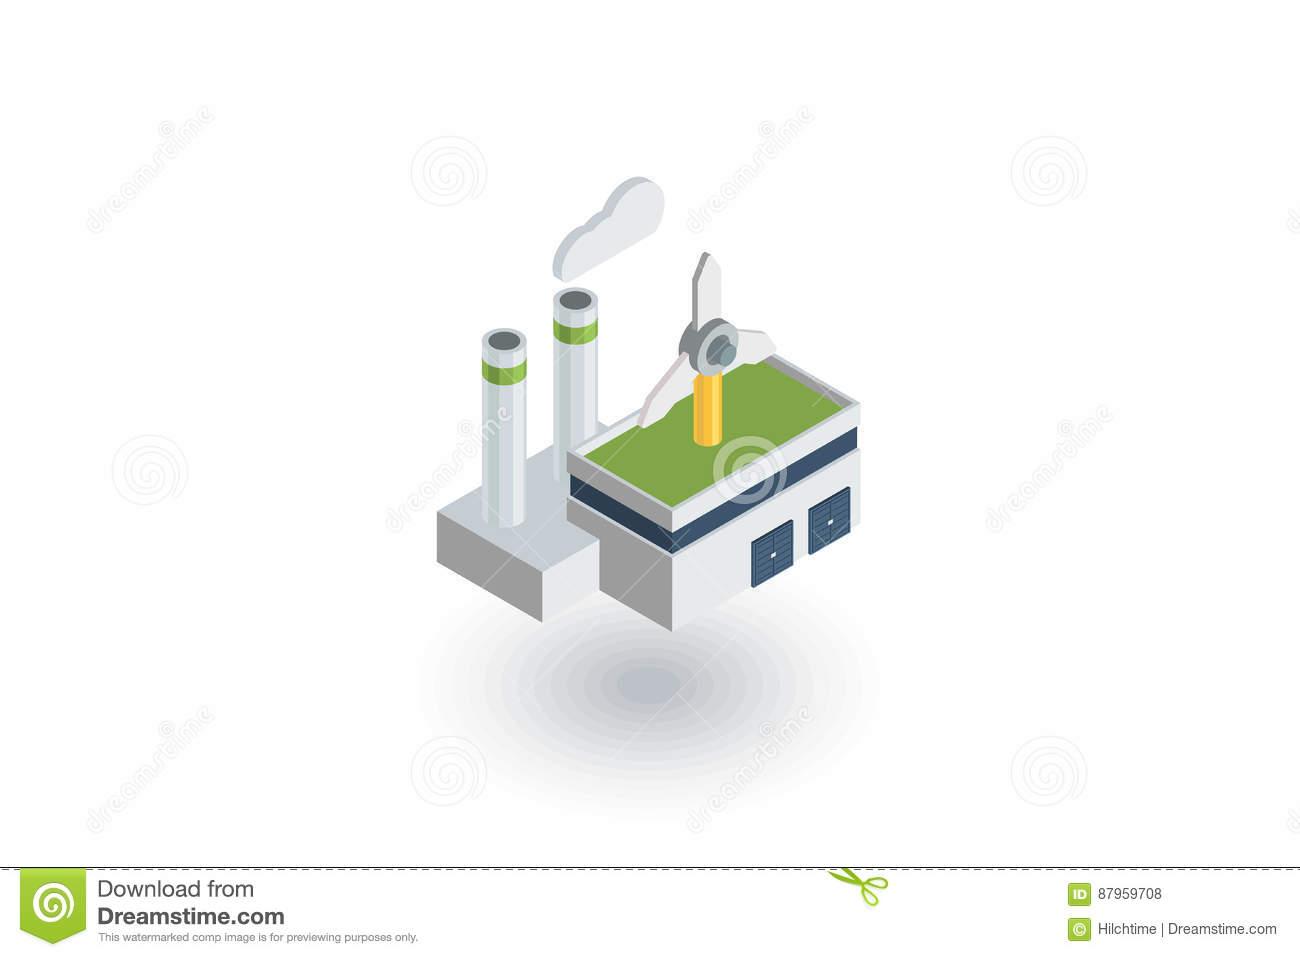 Green eco factory building, manufacture whith wind turbines isometric flat icon. 3d vector